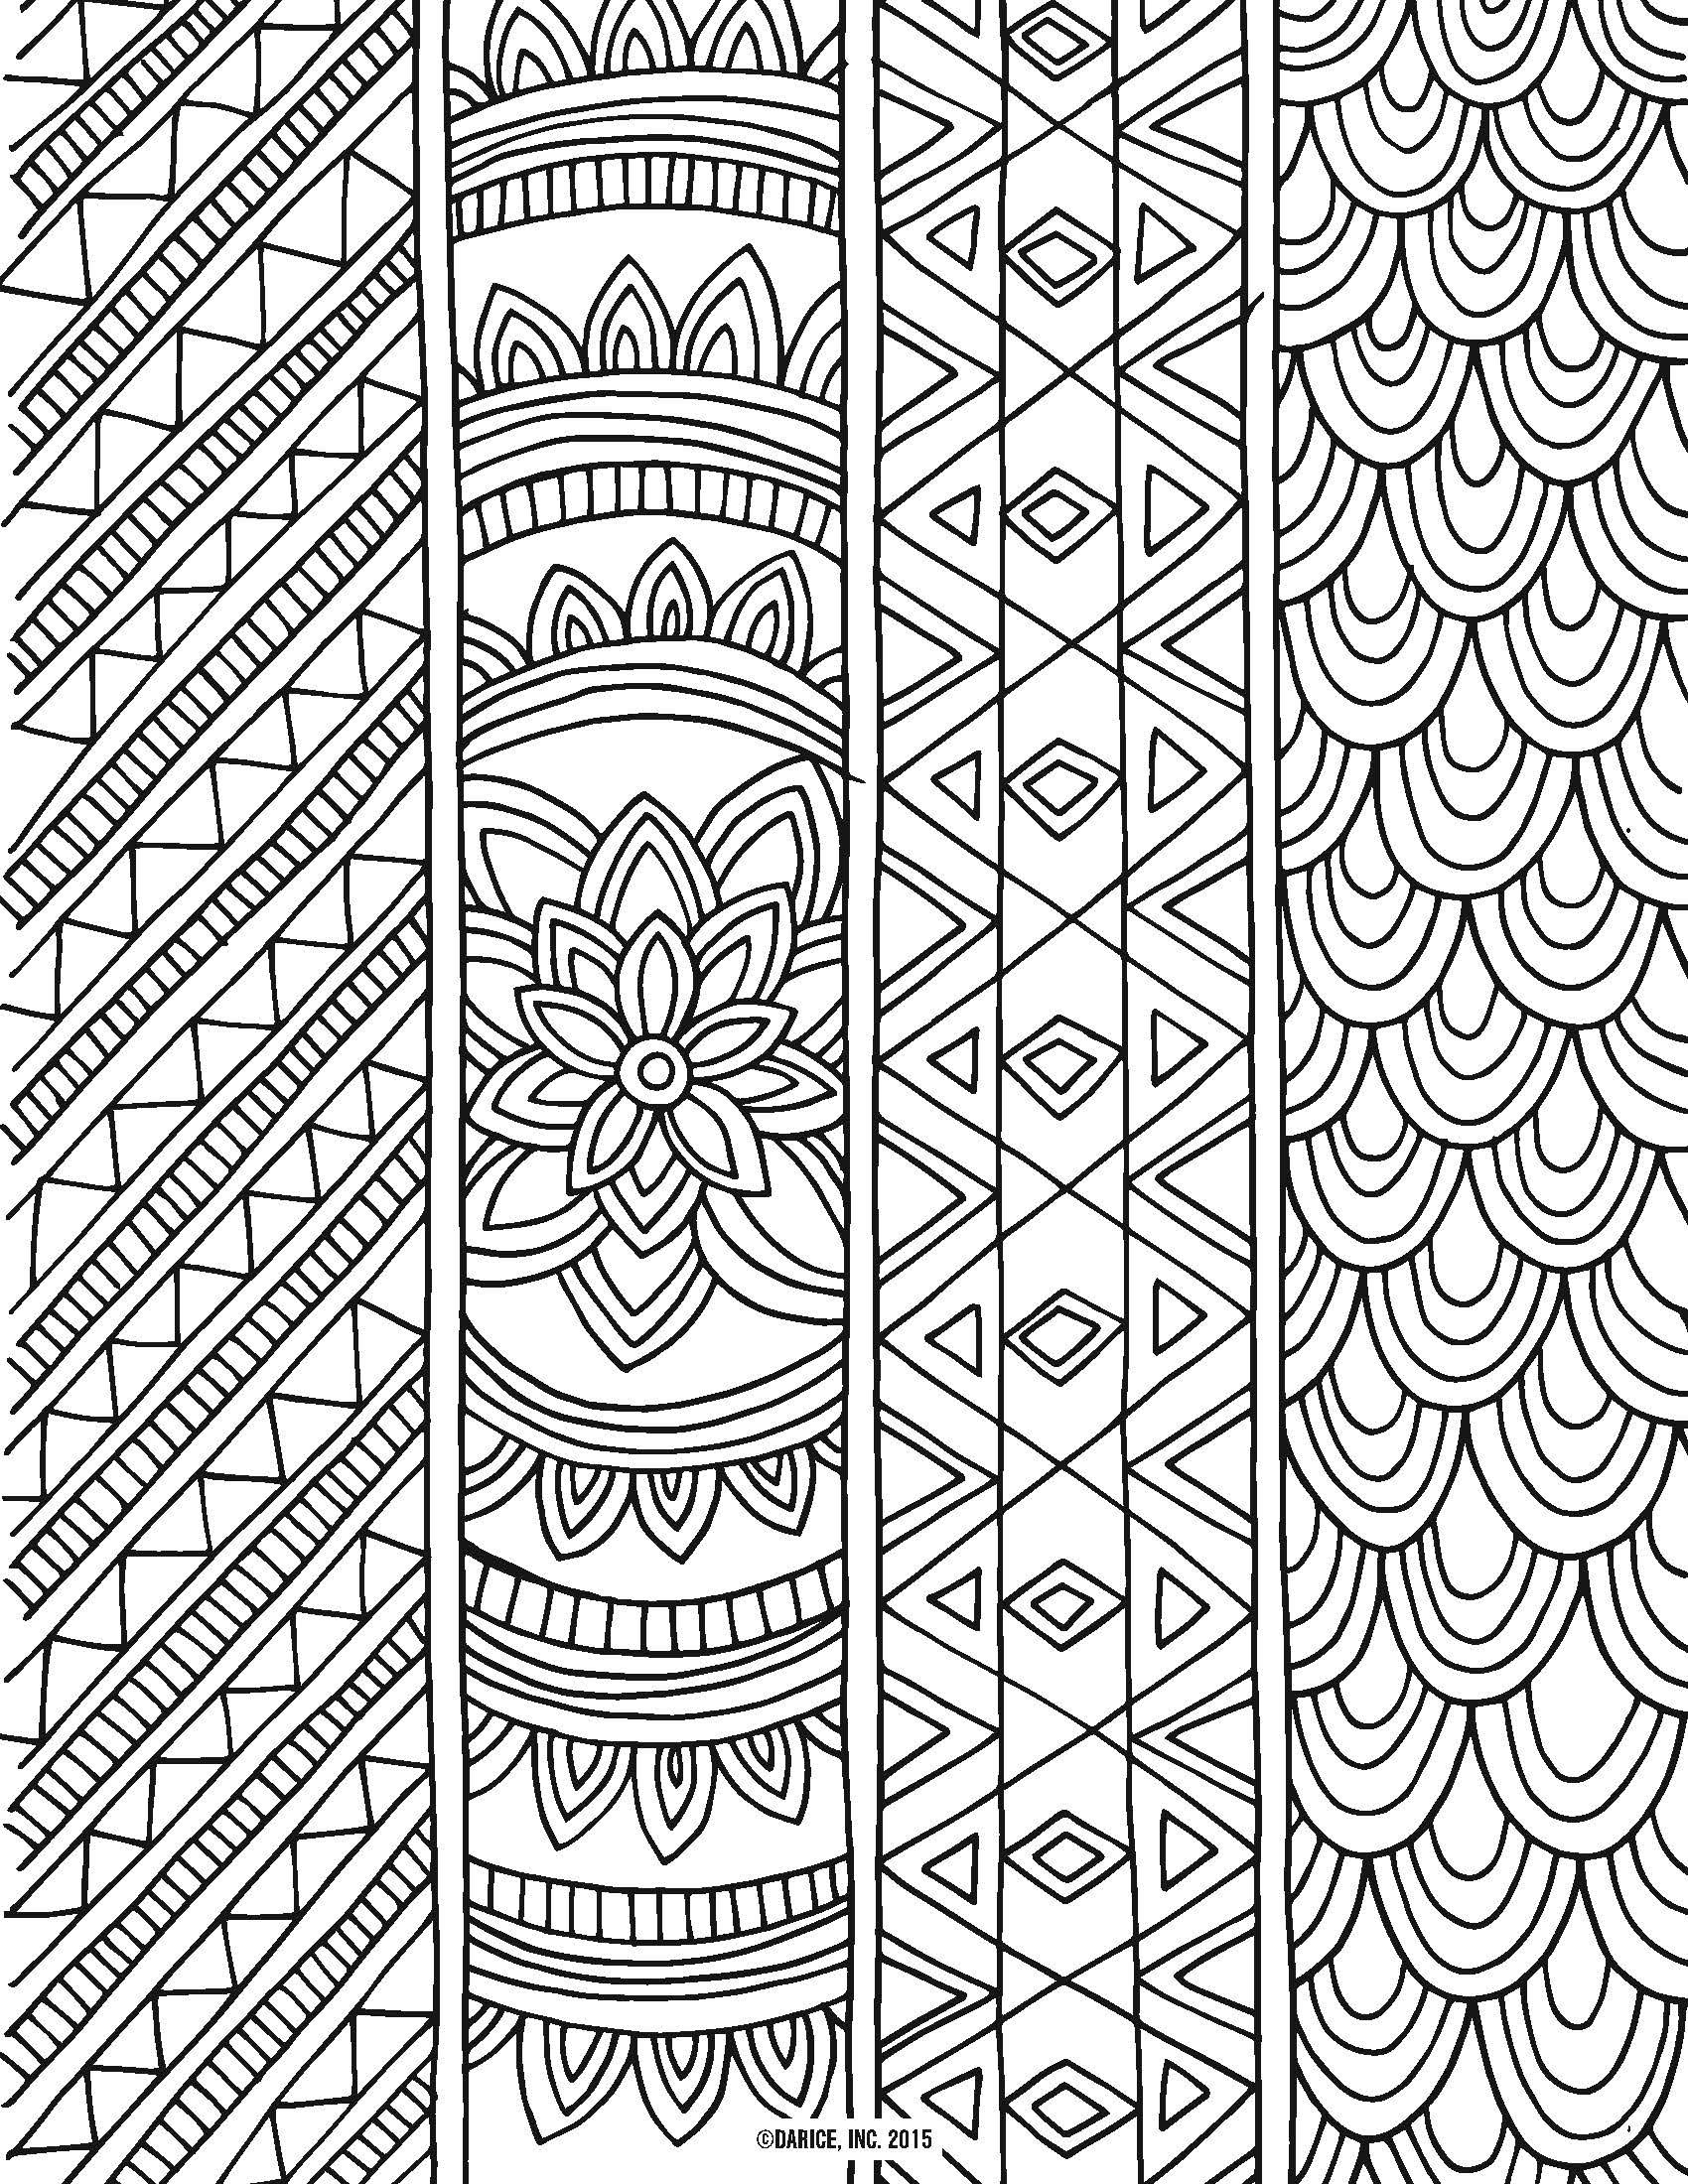 Try out the adult coloring book